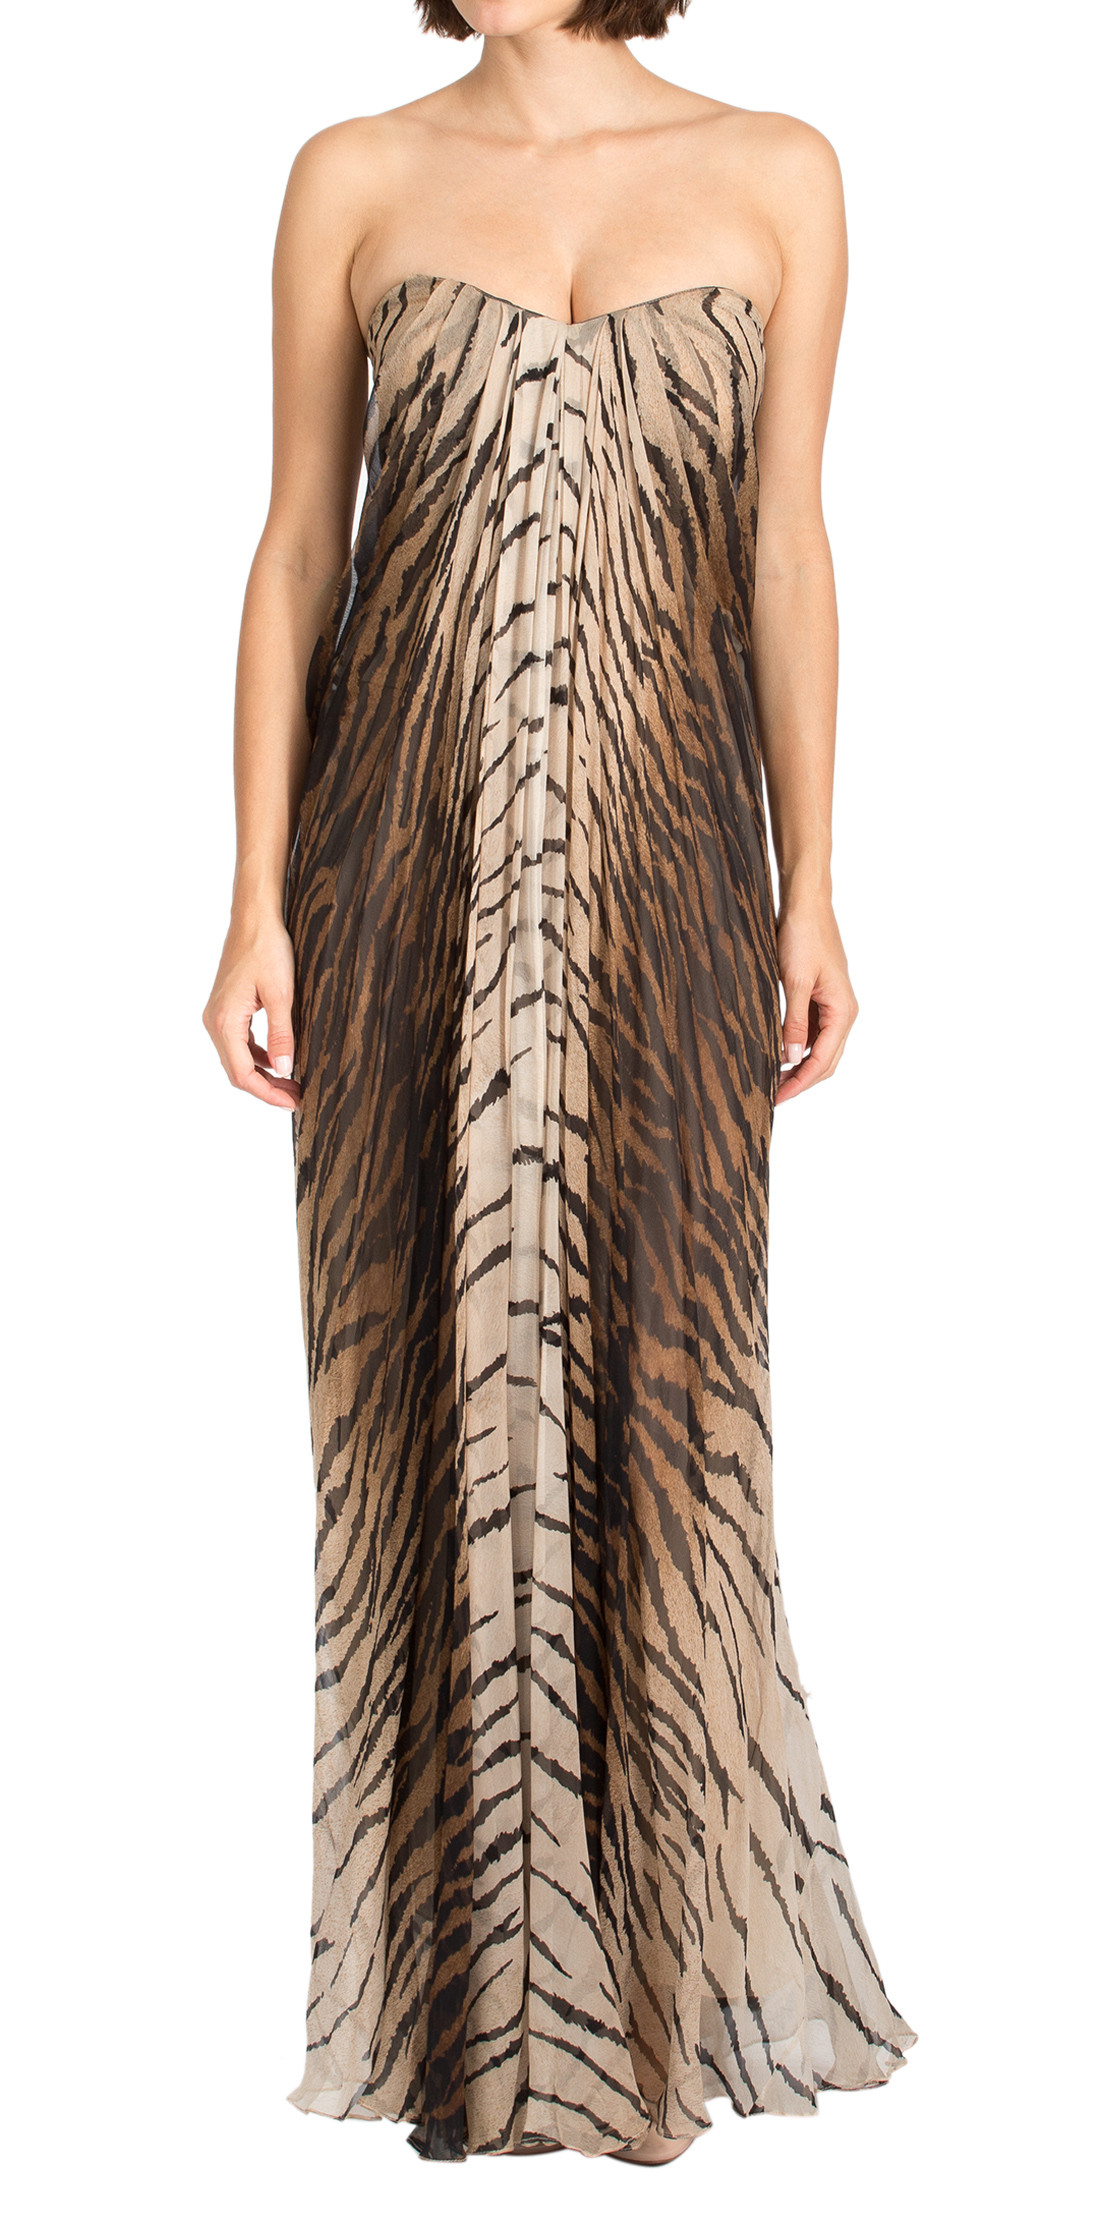 Alexander Mcqueen Jungle Print Strapless Dress